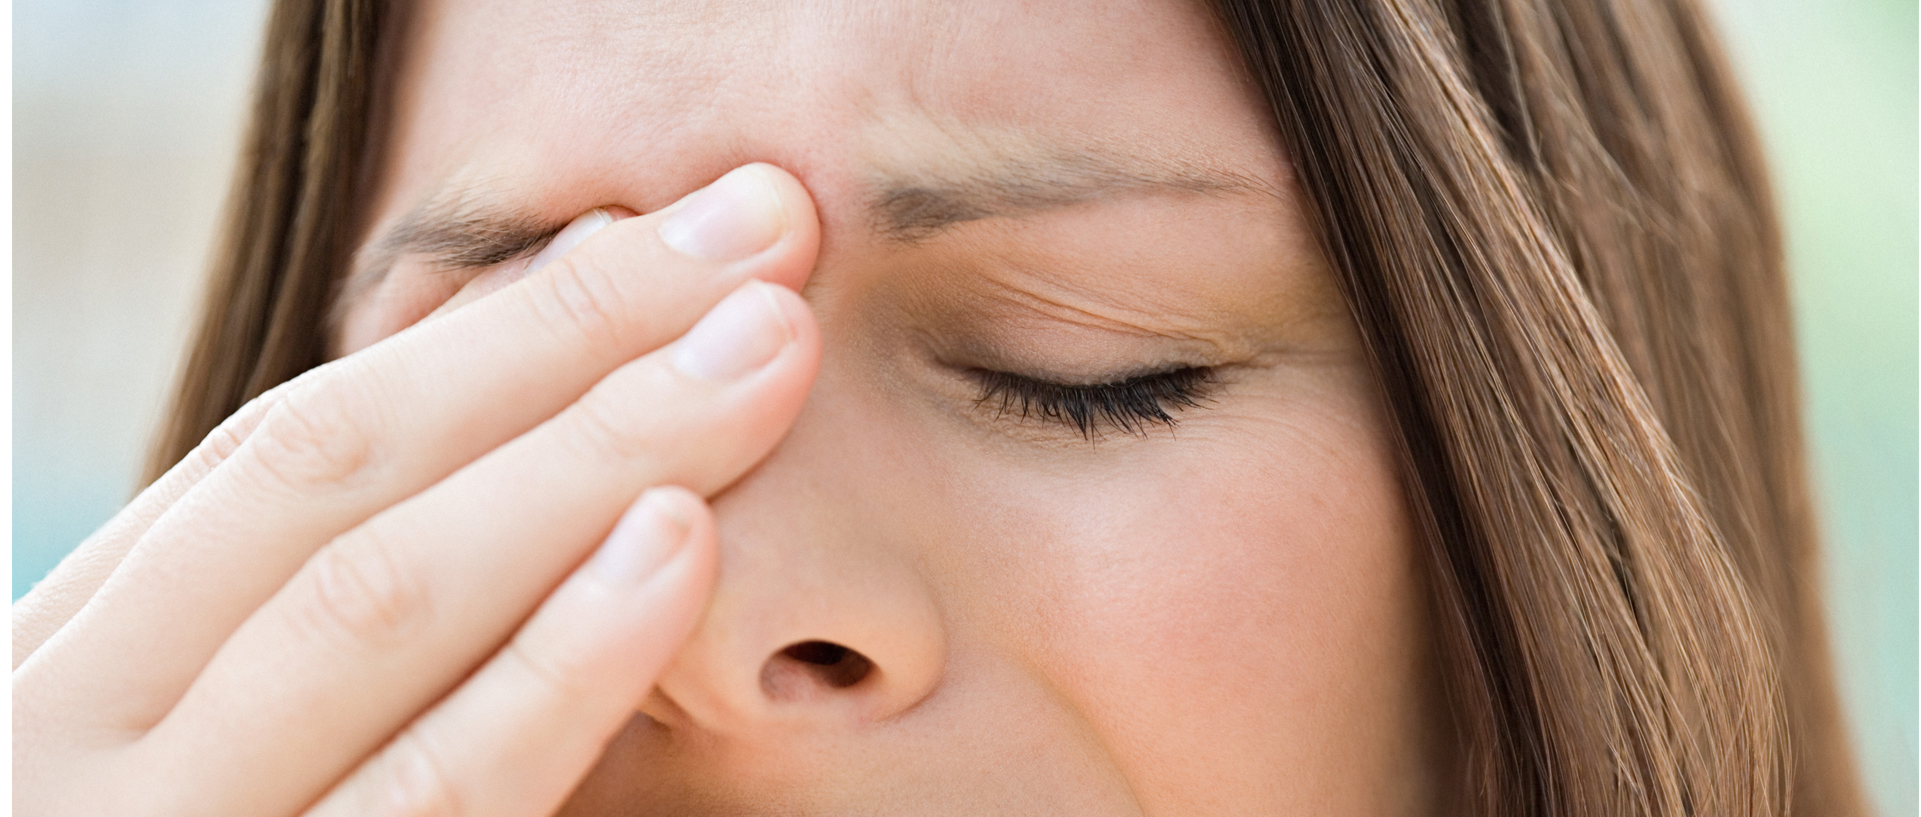 You Don't Need Antibiotics for Sinus Infections Consumer Reports #965435